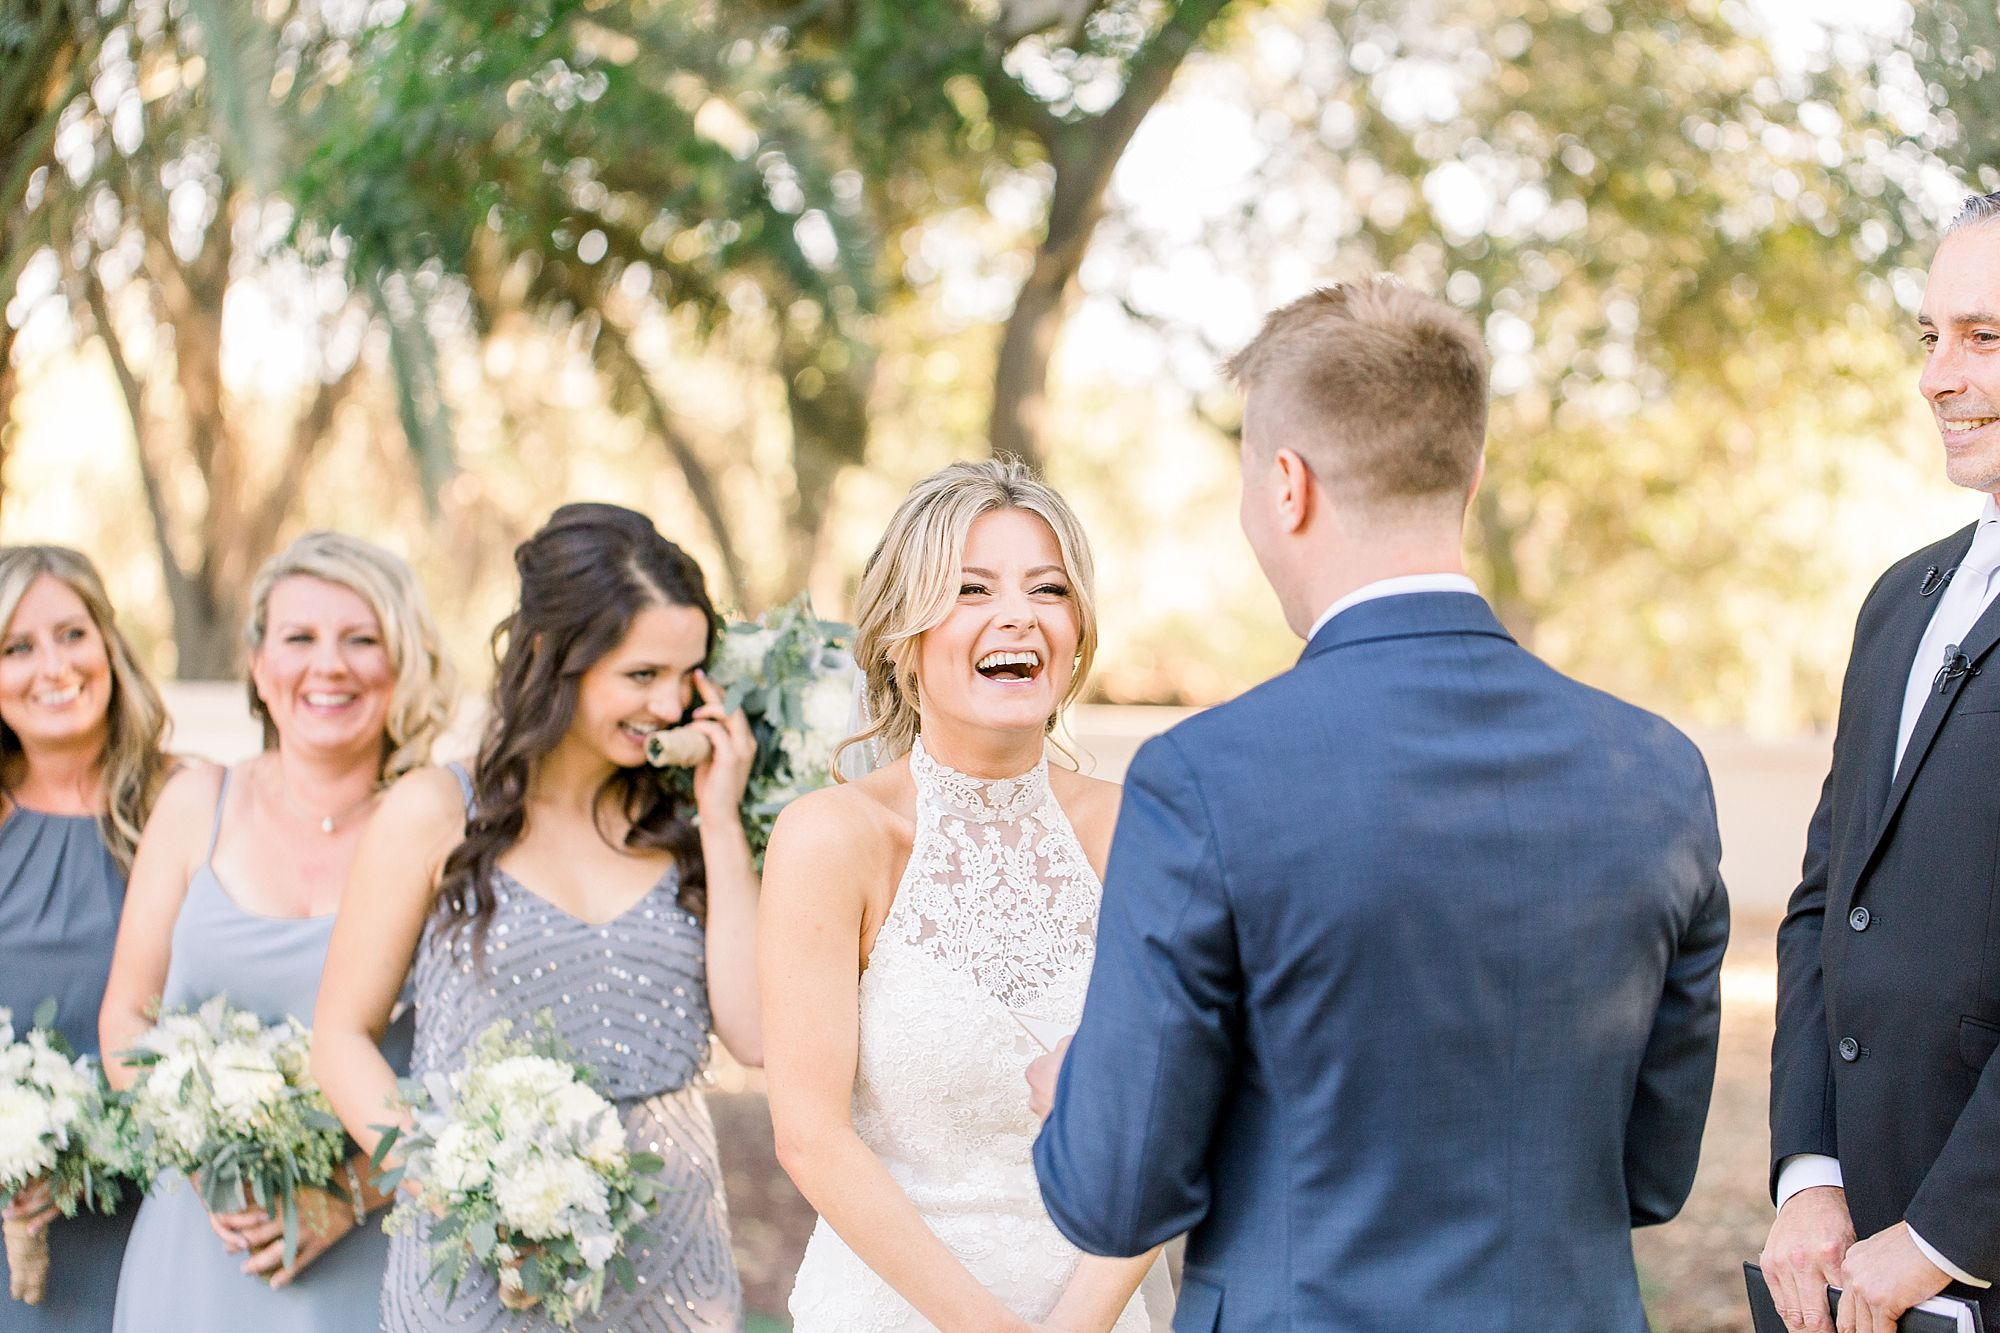 The Maples Wedding in Woodland California - Ashley Baumgartner - Sacramento Wedding Photographer - Sacramento Film Photographer_0040.jpg